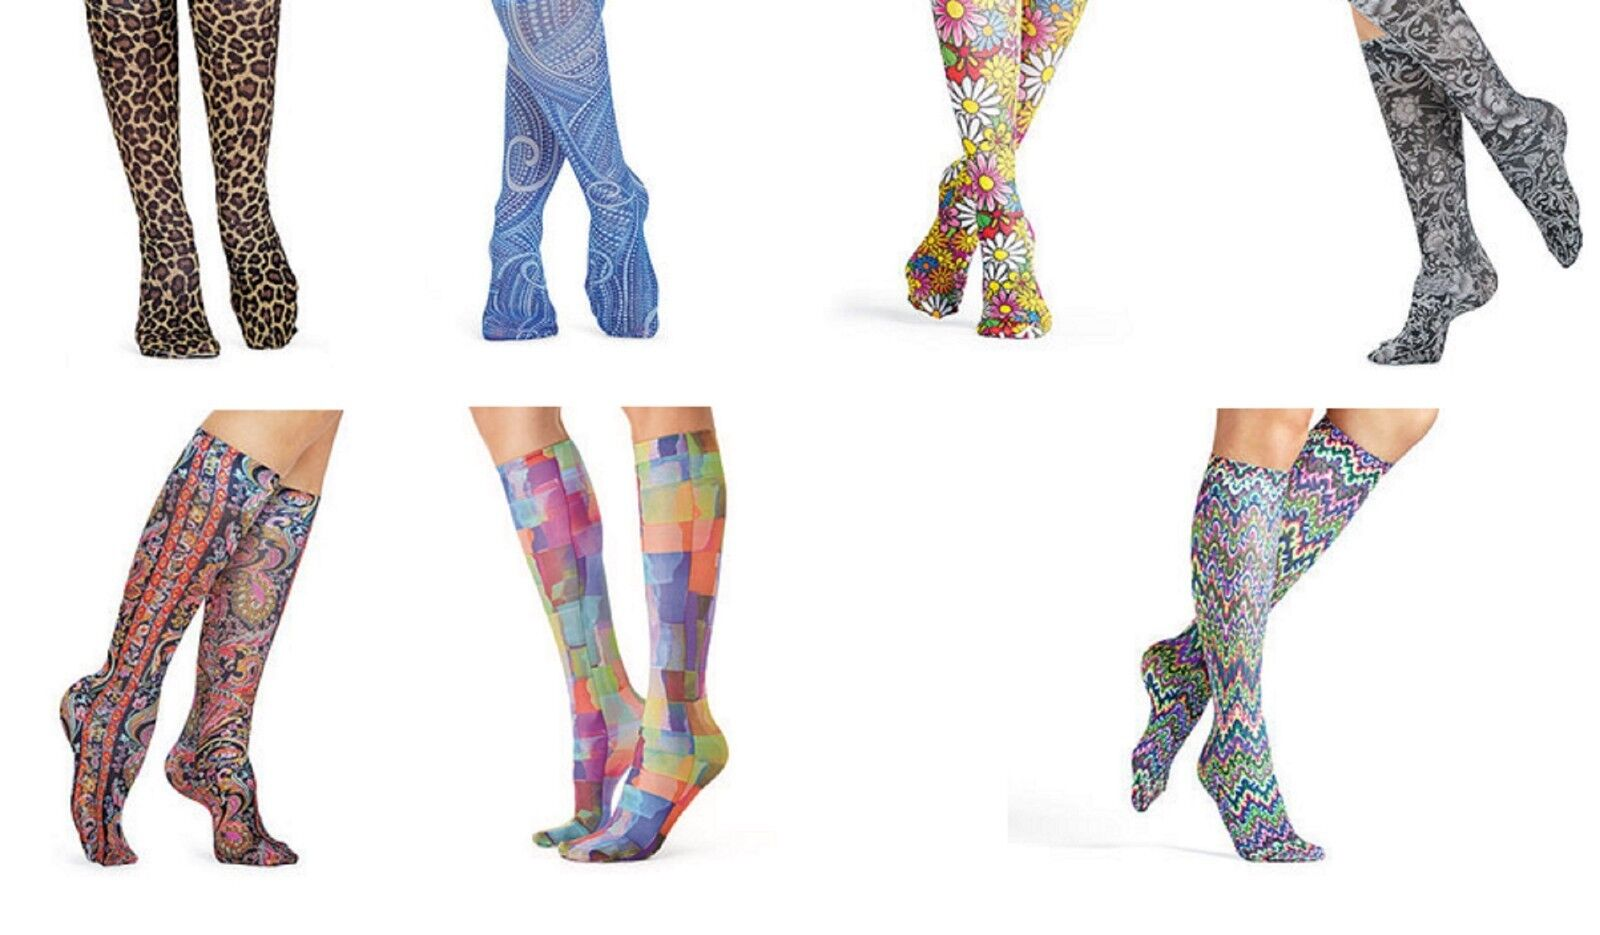 Compression Knee Socks Highs Celeste Stein Made in USA Choose Size and Design Clothing, Shoes & Accessories